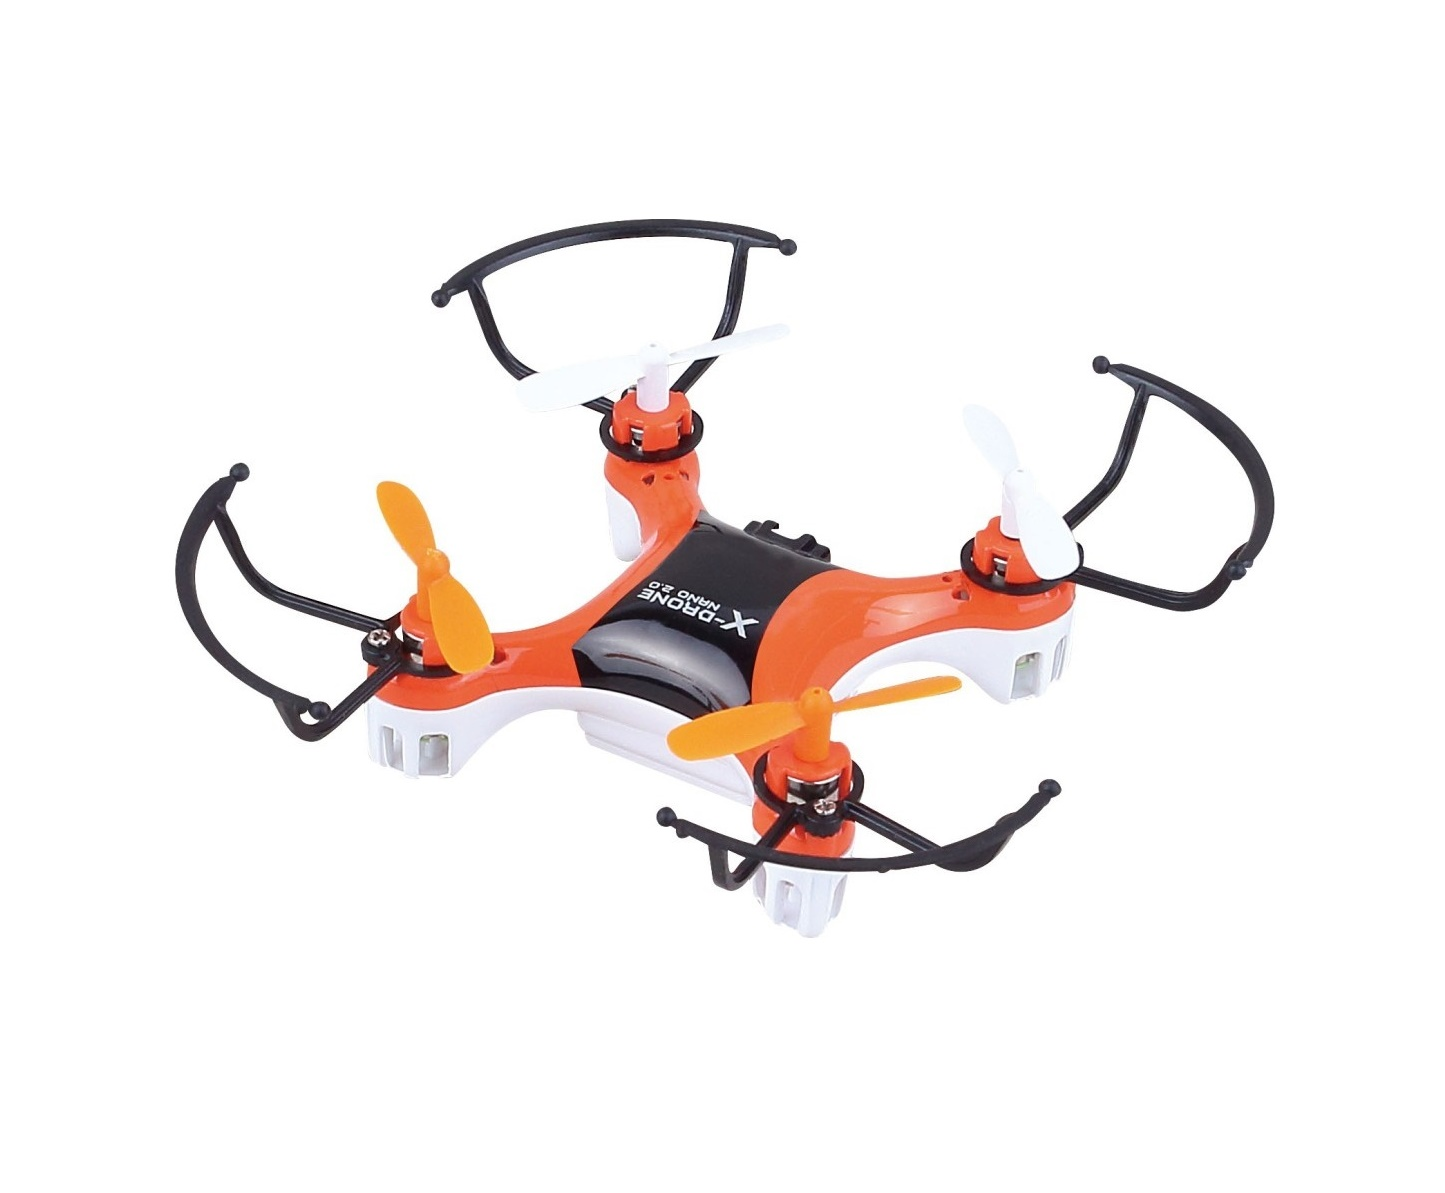 The Flyers Bay Nano Quadcopter With 360 Degree Axis Gyro Stabilization